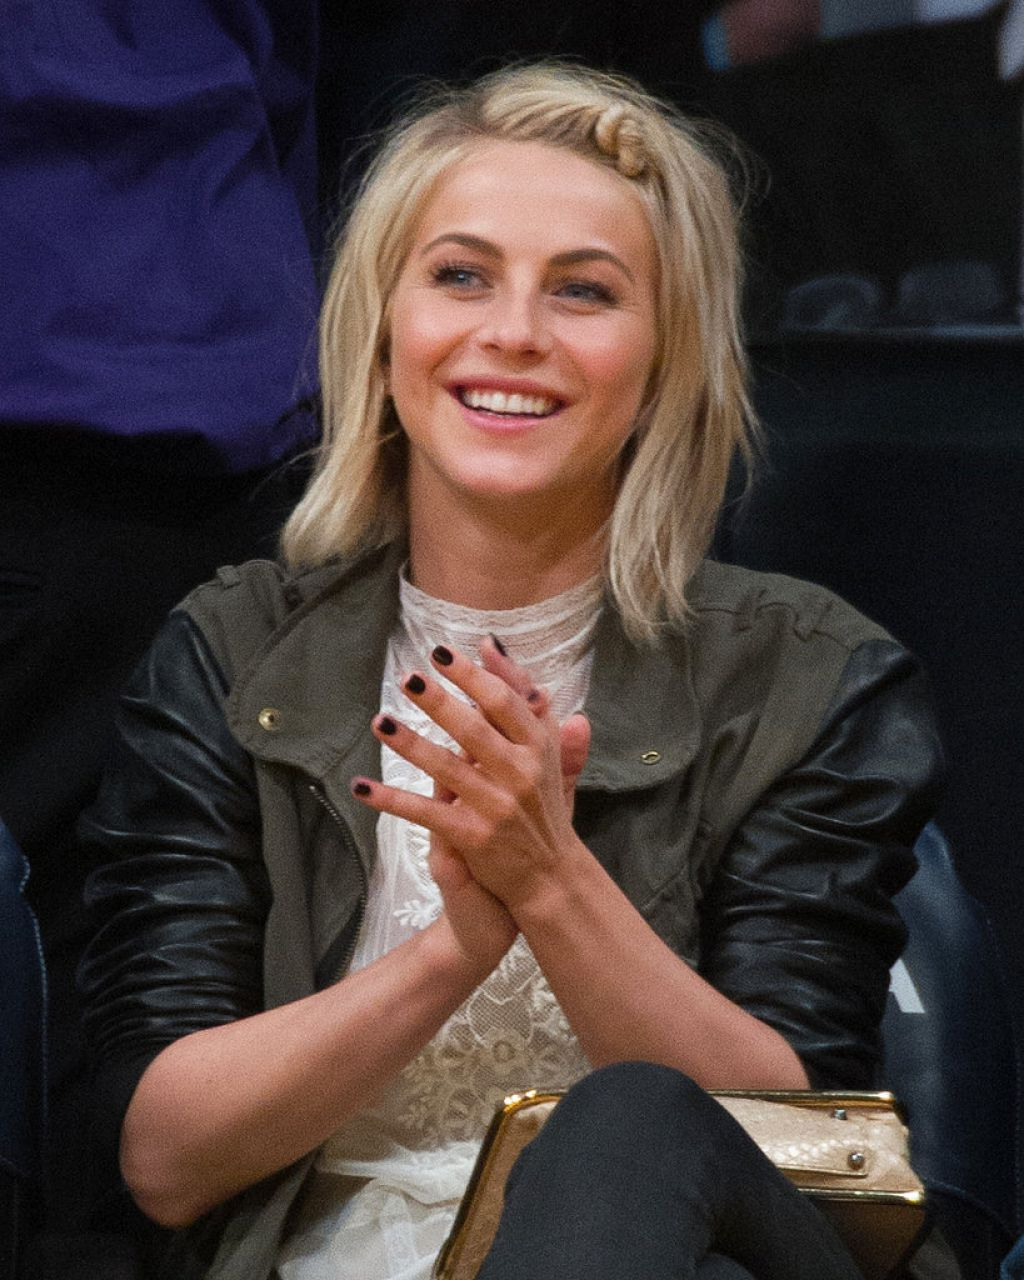 The Best Julianne Hough's Short Hairstyles – Hair World Magazine In Julianne Hough Short Hairstyles (View 11 of 25)